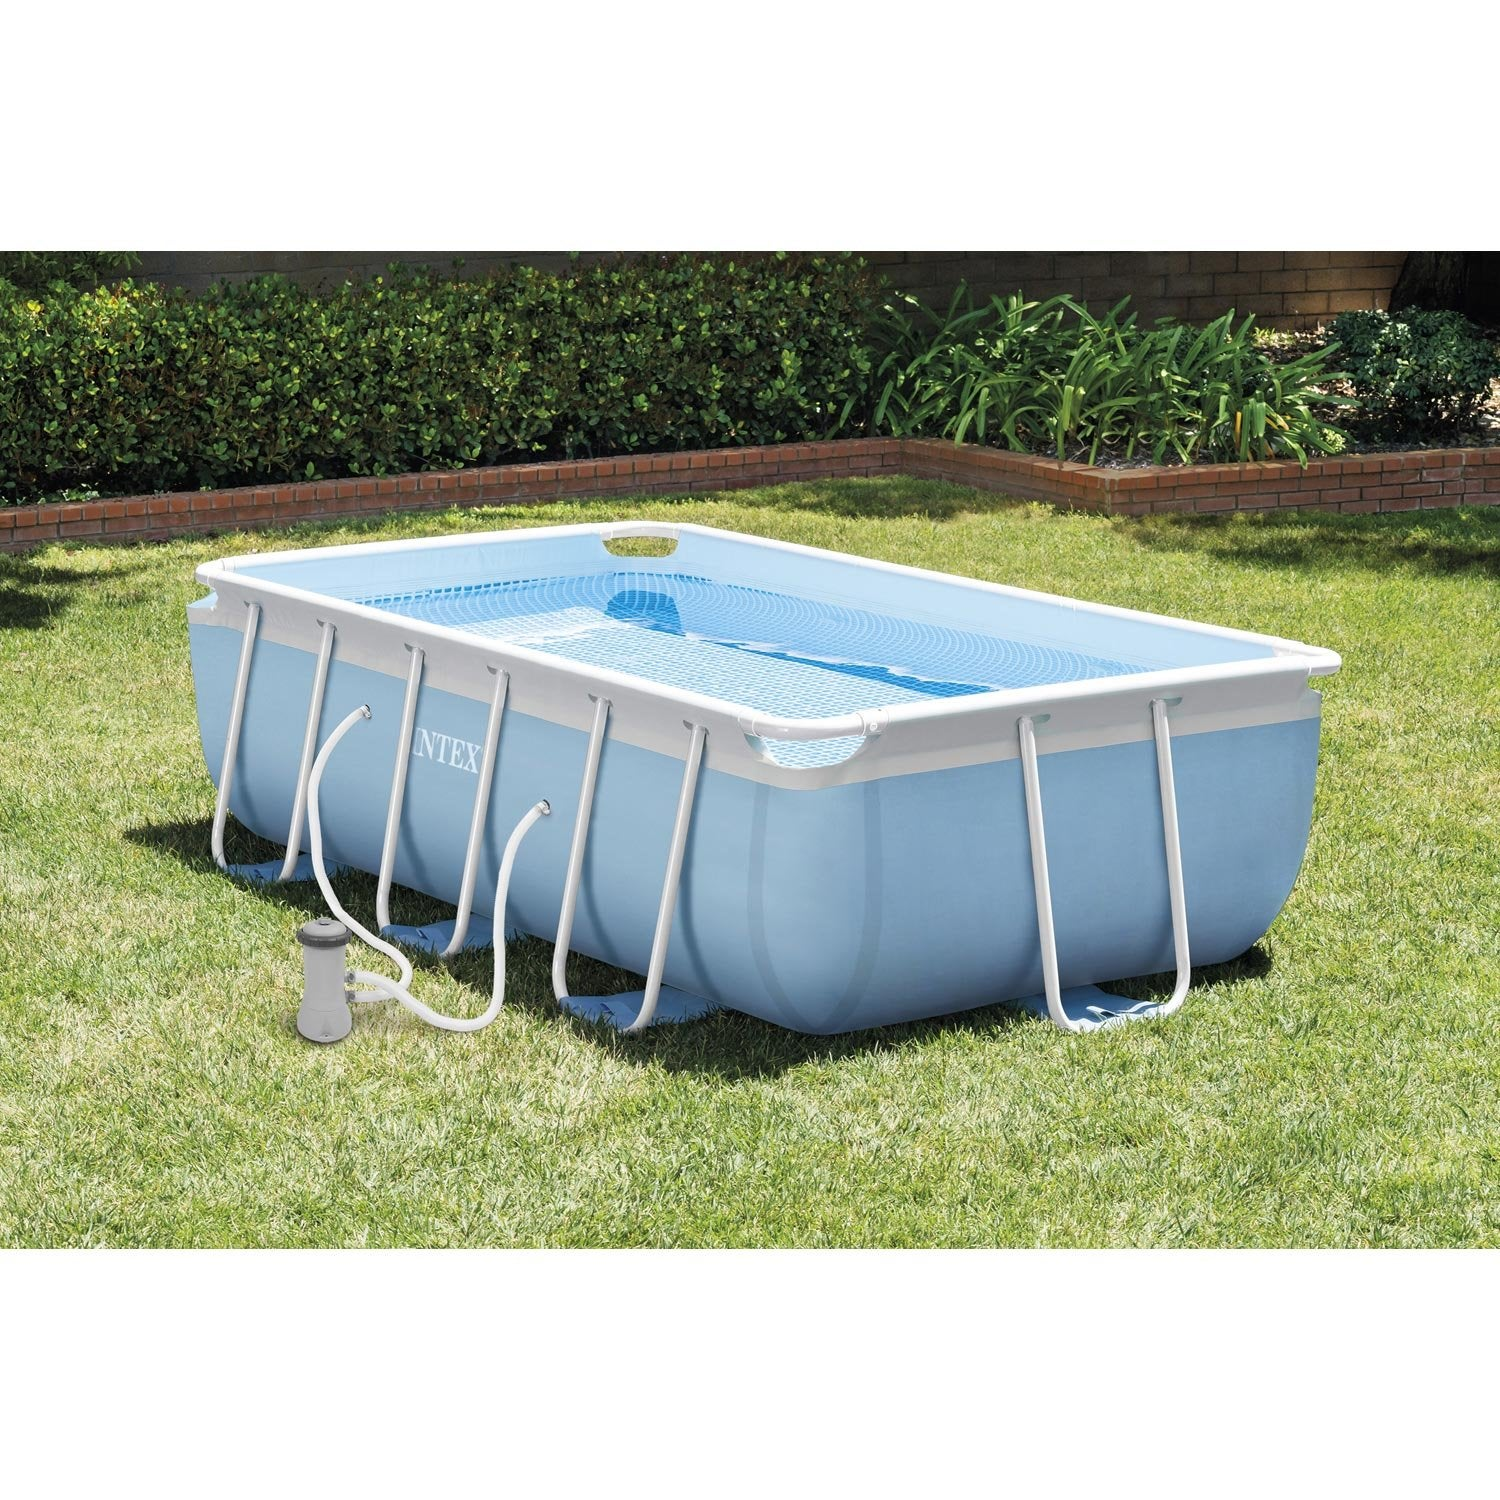 Piscine hors sol autoportante tubulaire intex l 3 4 x l 2 for Piscine demontable intex